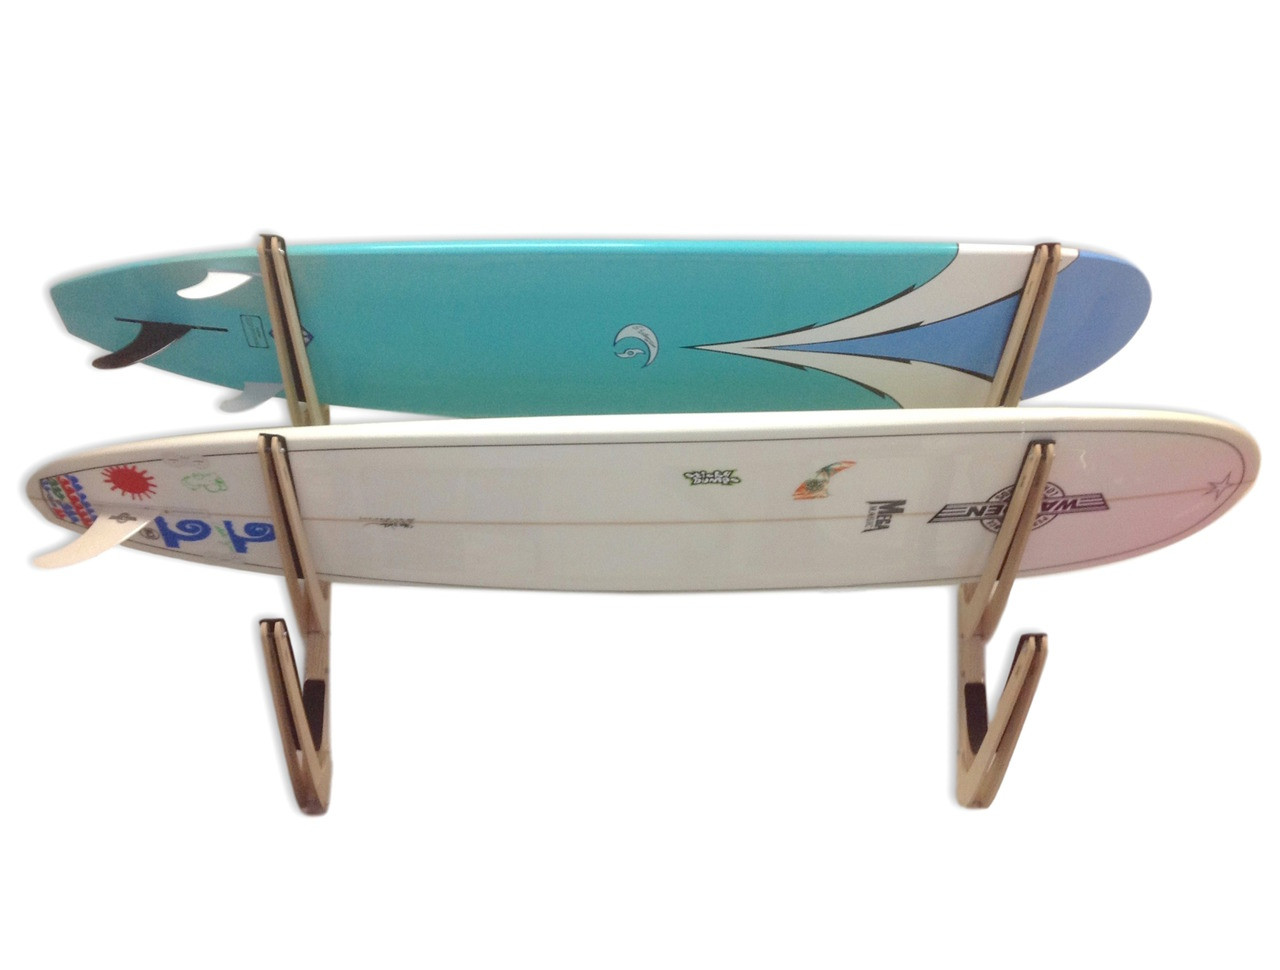 talic hangout 3 surfboard wall rack